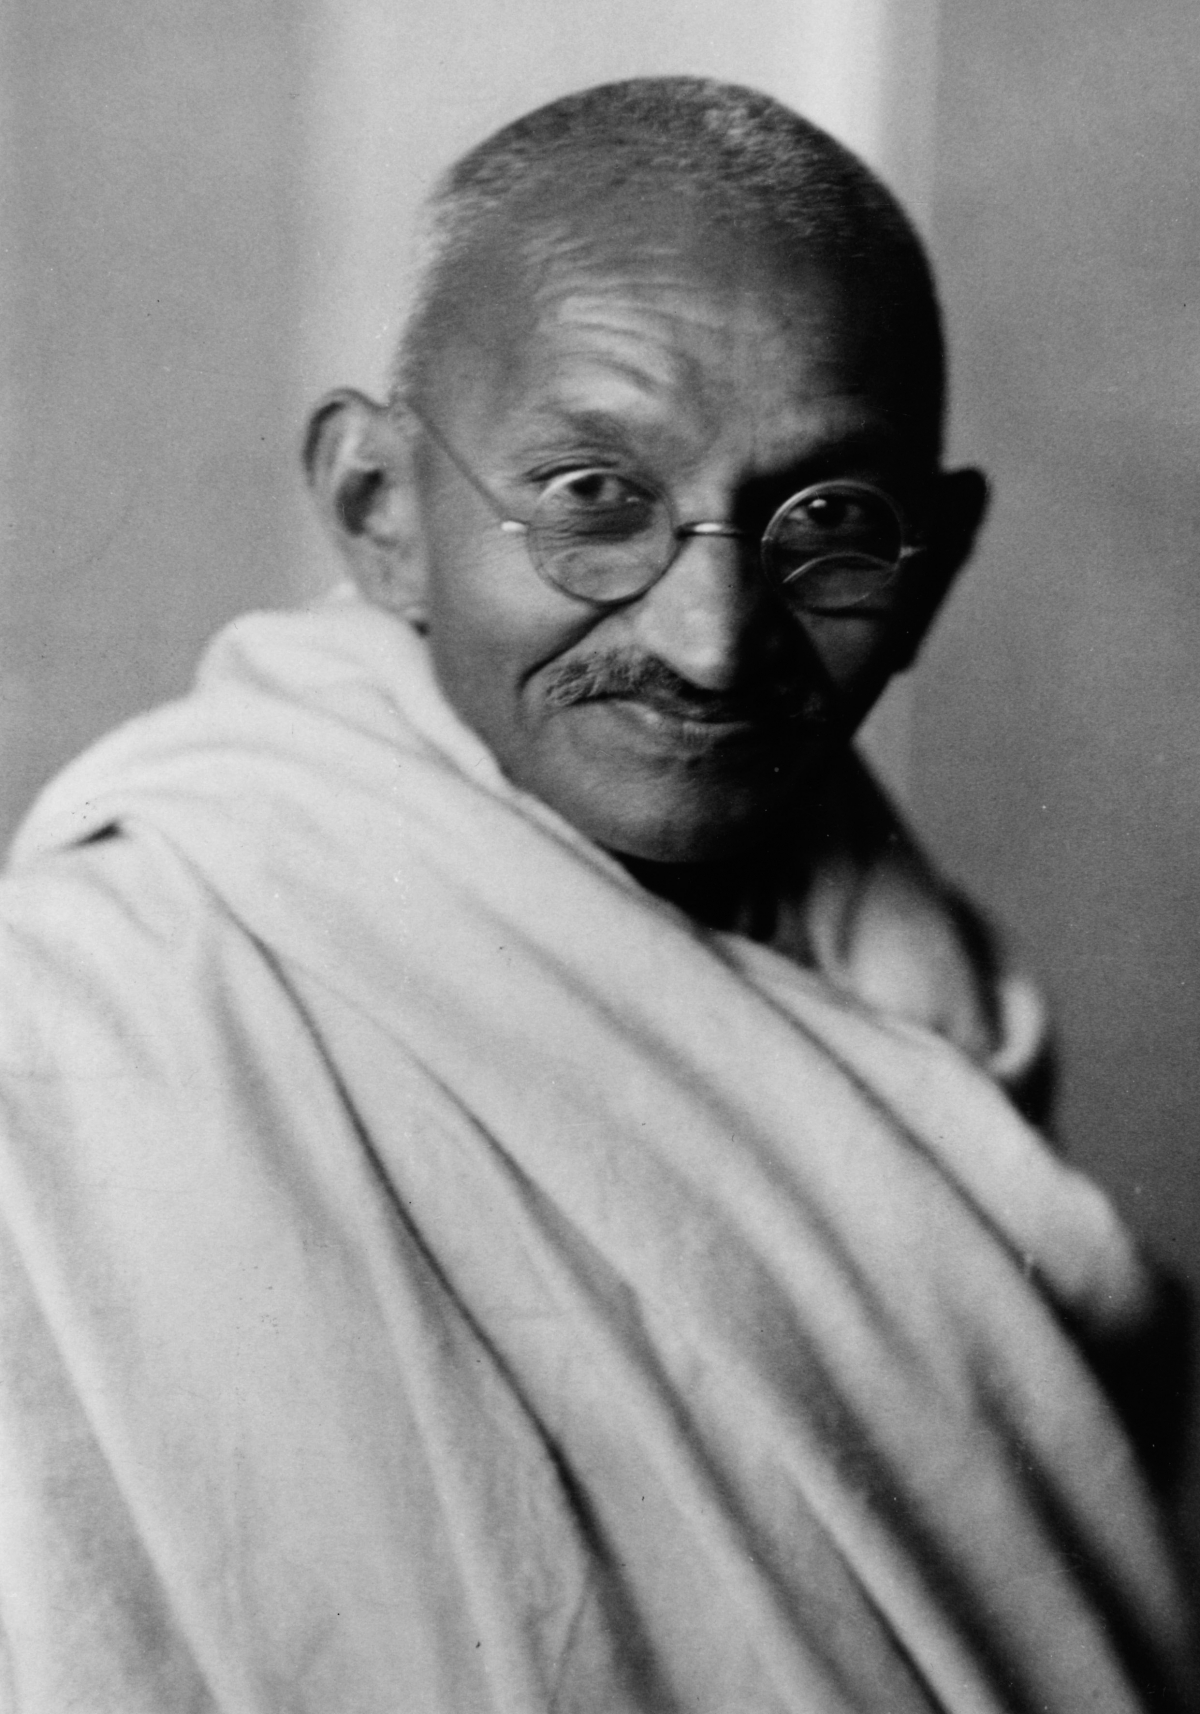 mohandas karamchand gandhi The 20th century's most famous apostle of non-violence himself met a violent end  mohandas mahatma ('the great soul') gandhi, who had taken a leading role in.